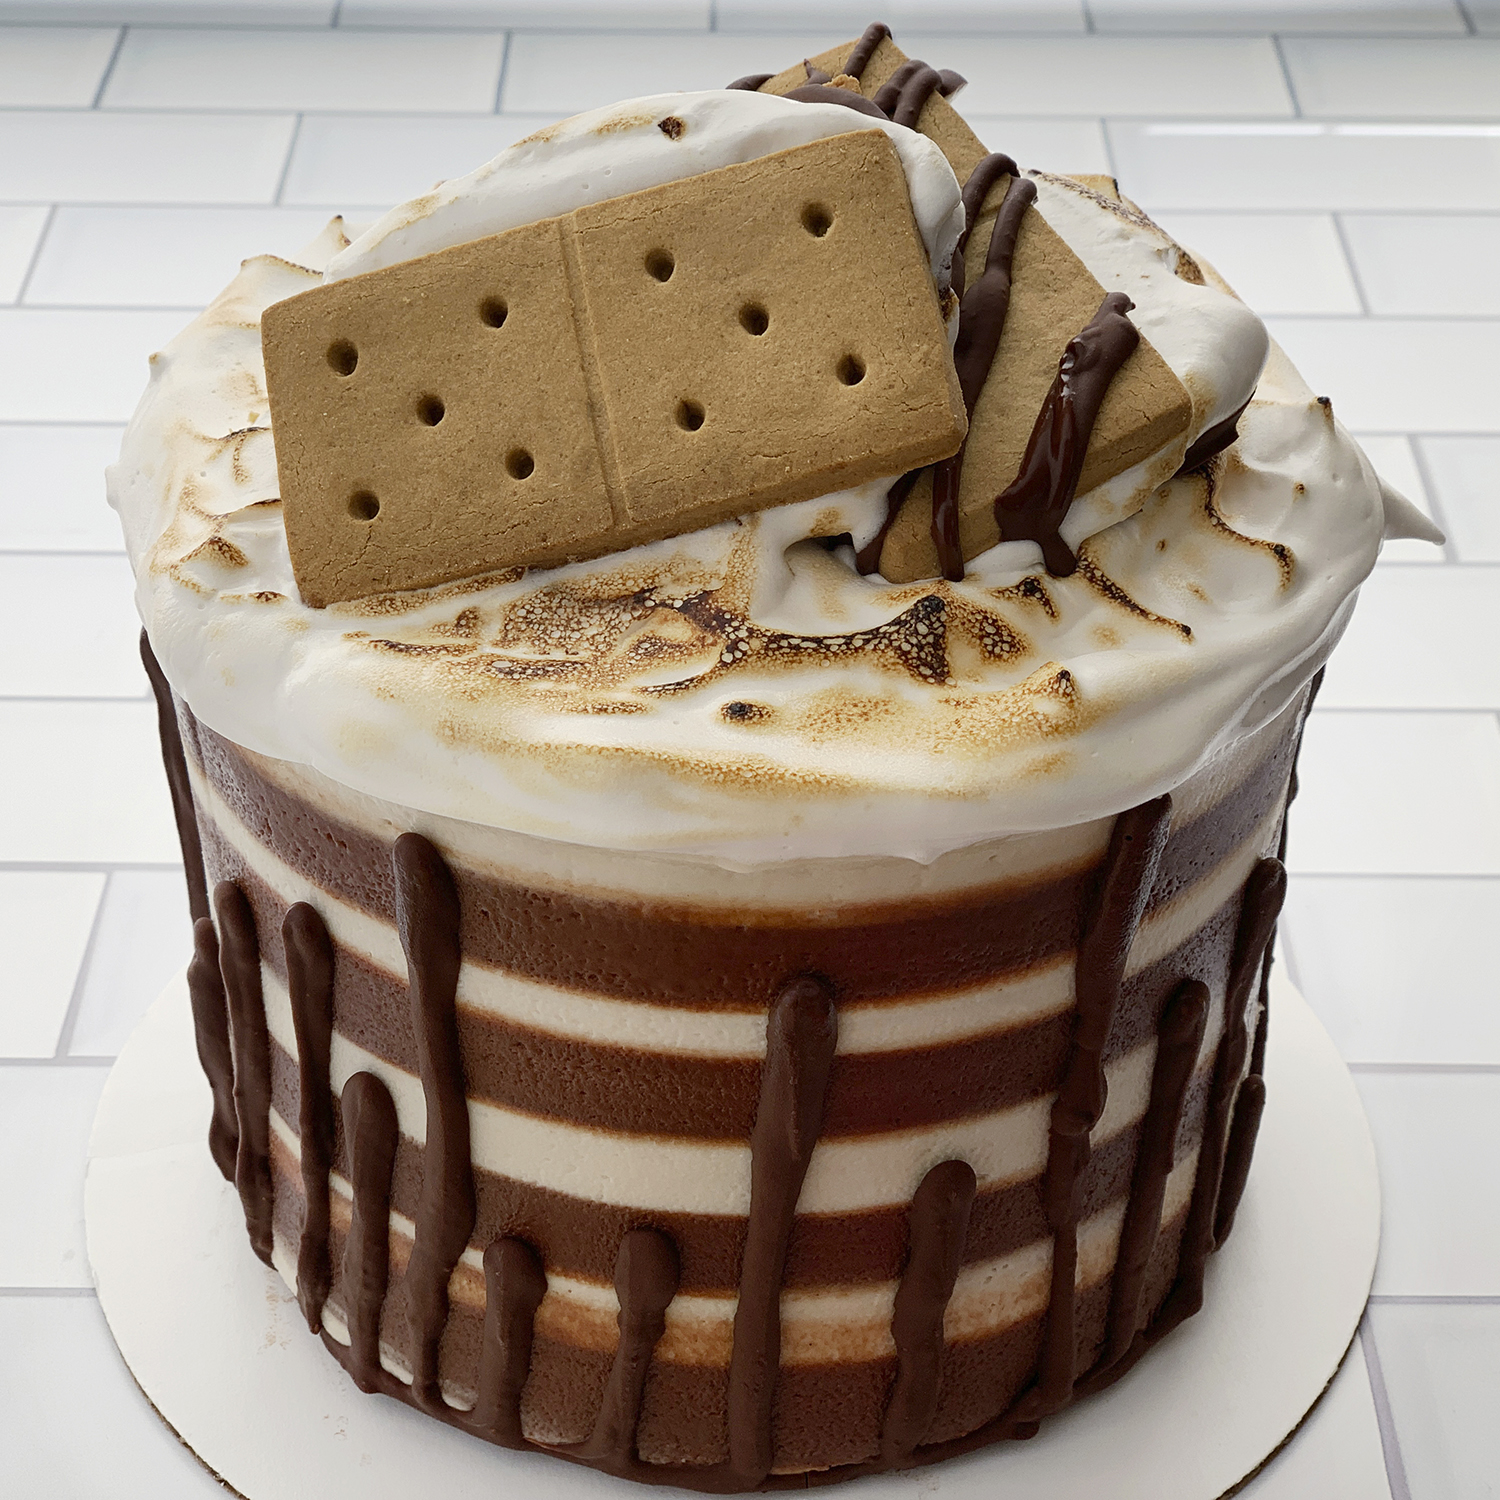 S'Mores Cake by The Allergy Chef